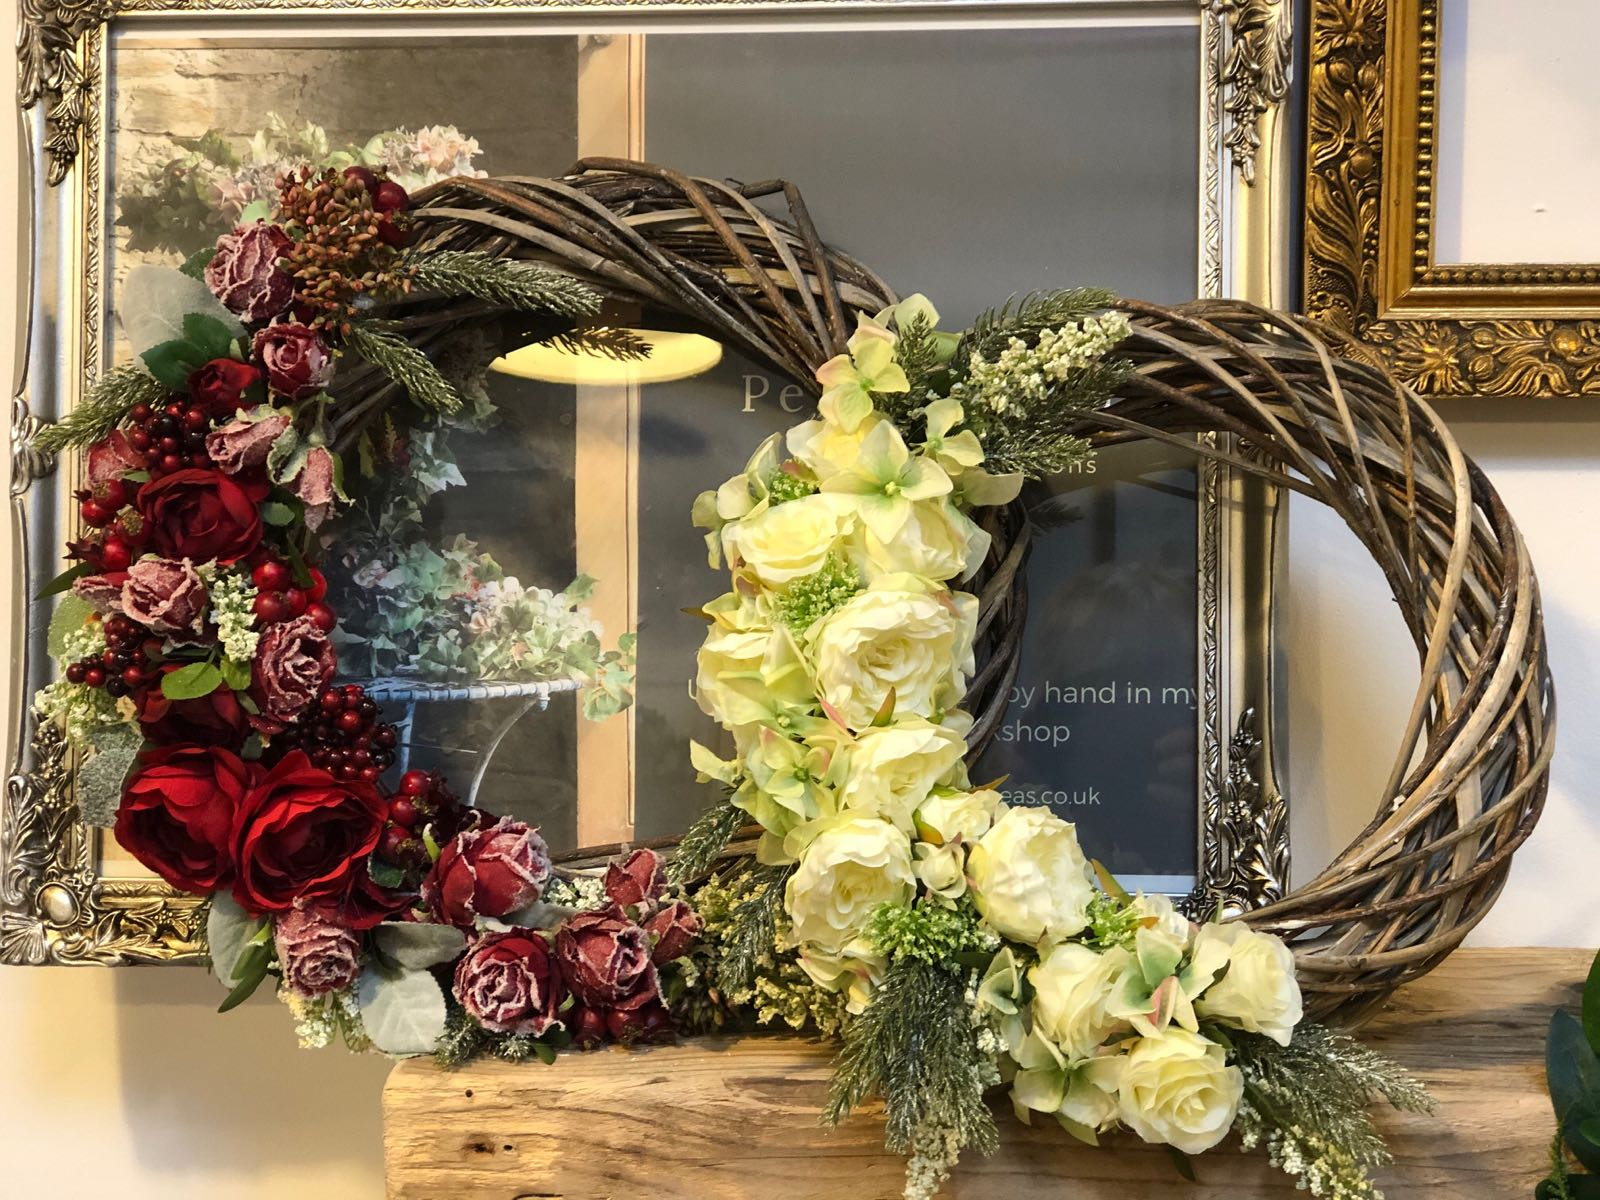 Petals and Peas Red Berries Wreath 40cm approx